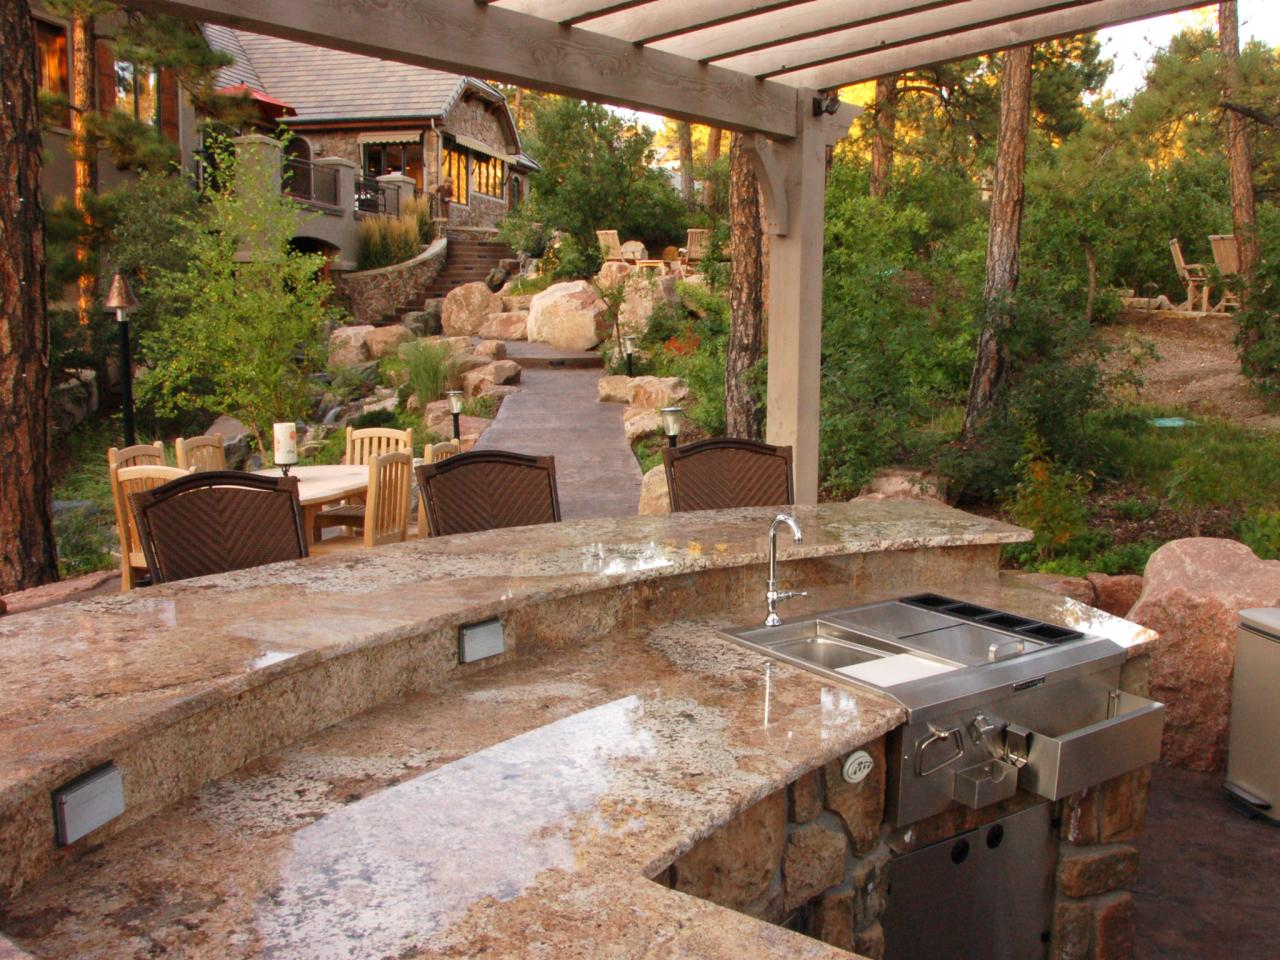 Home Decor modular outdoor kitchen kits and accessories imepjig